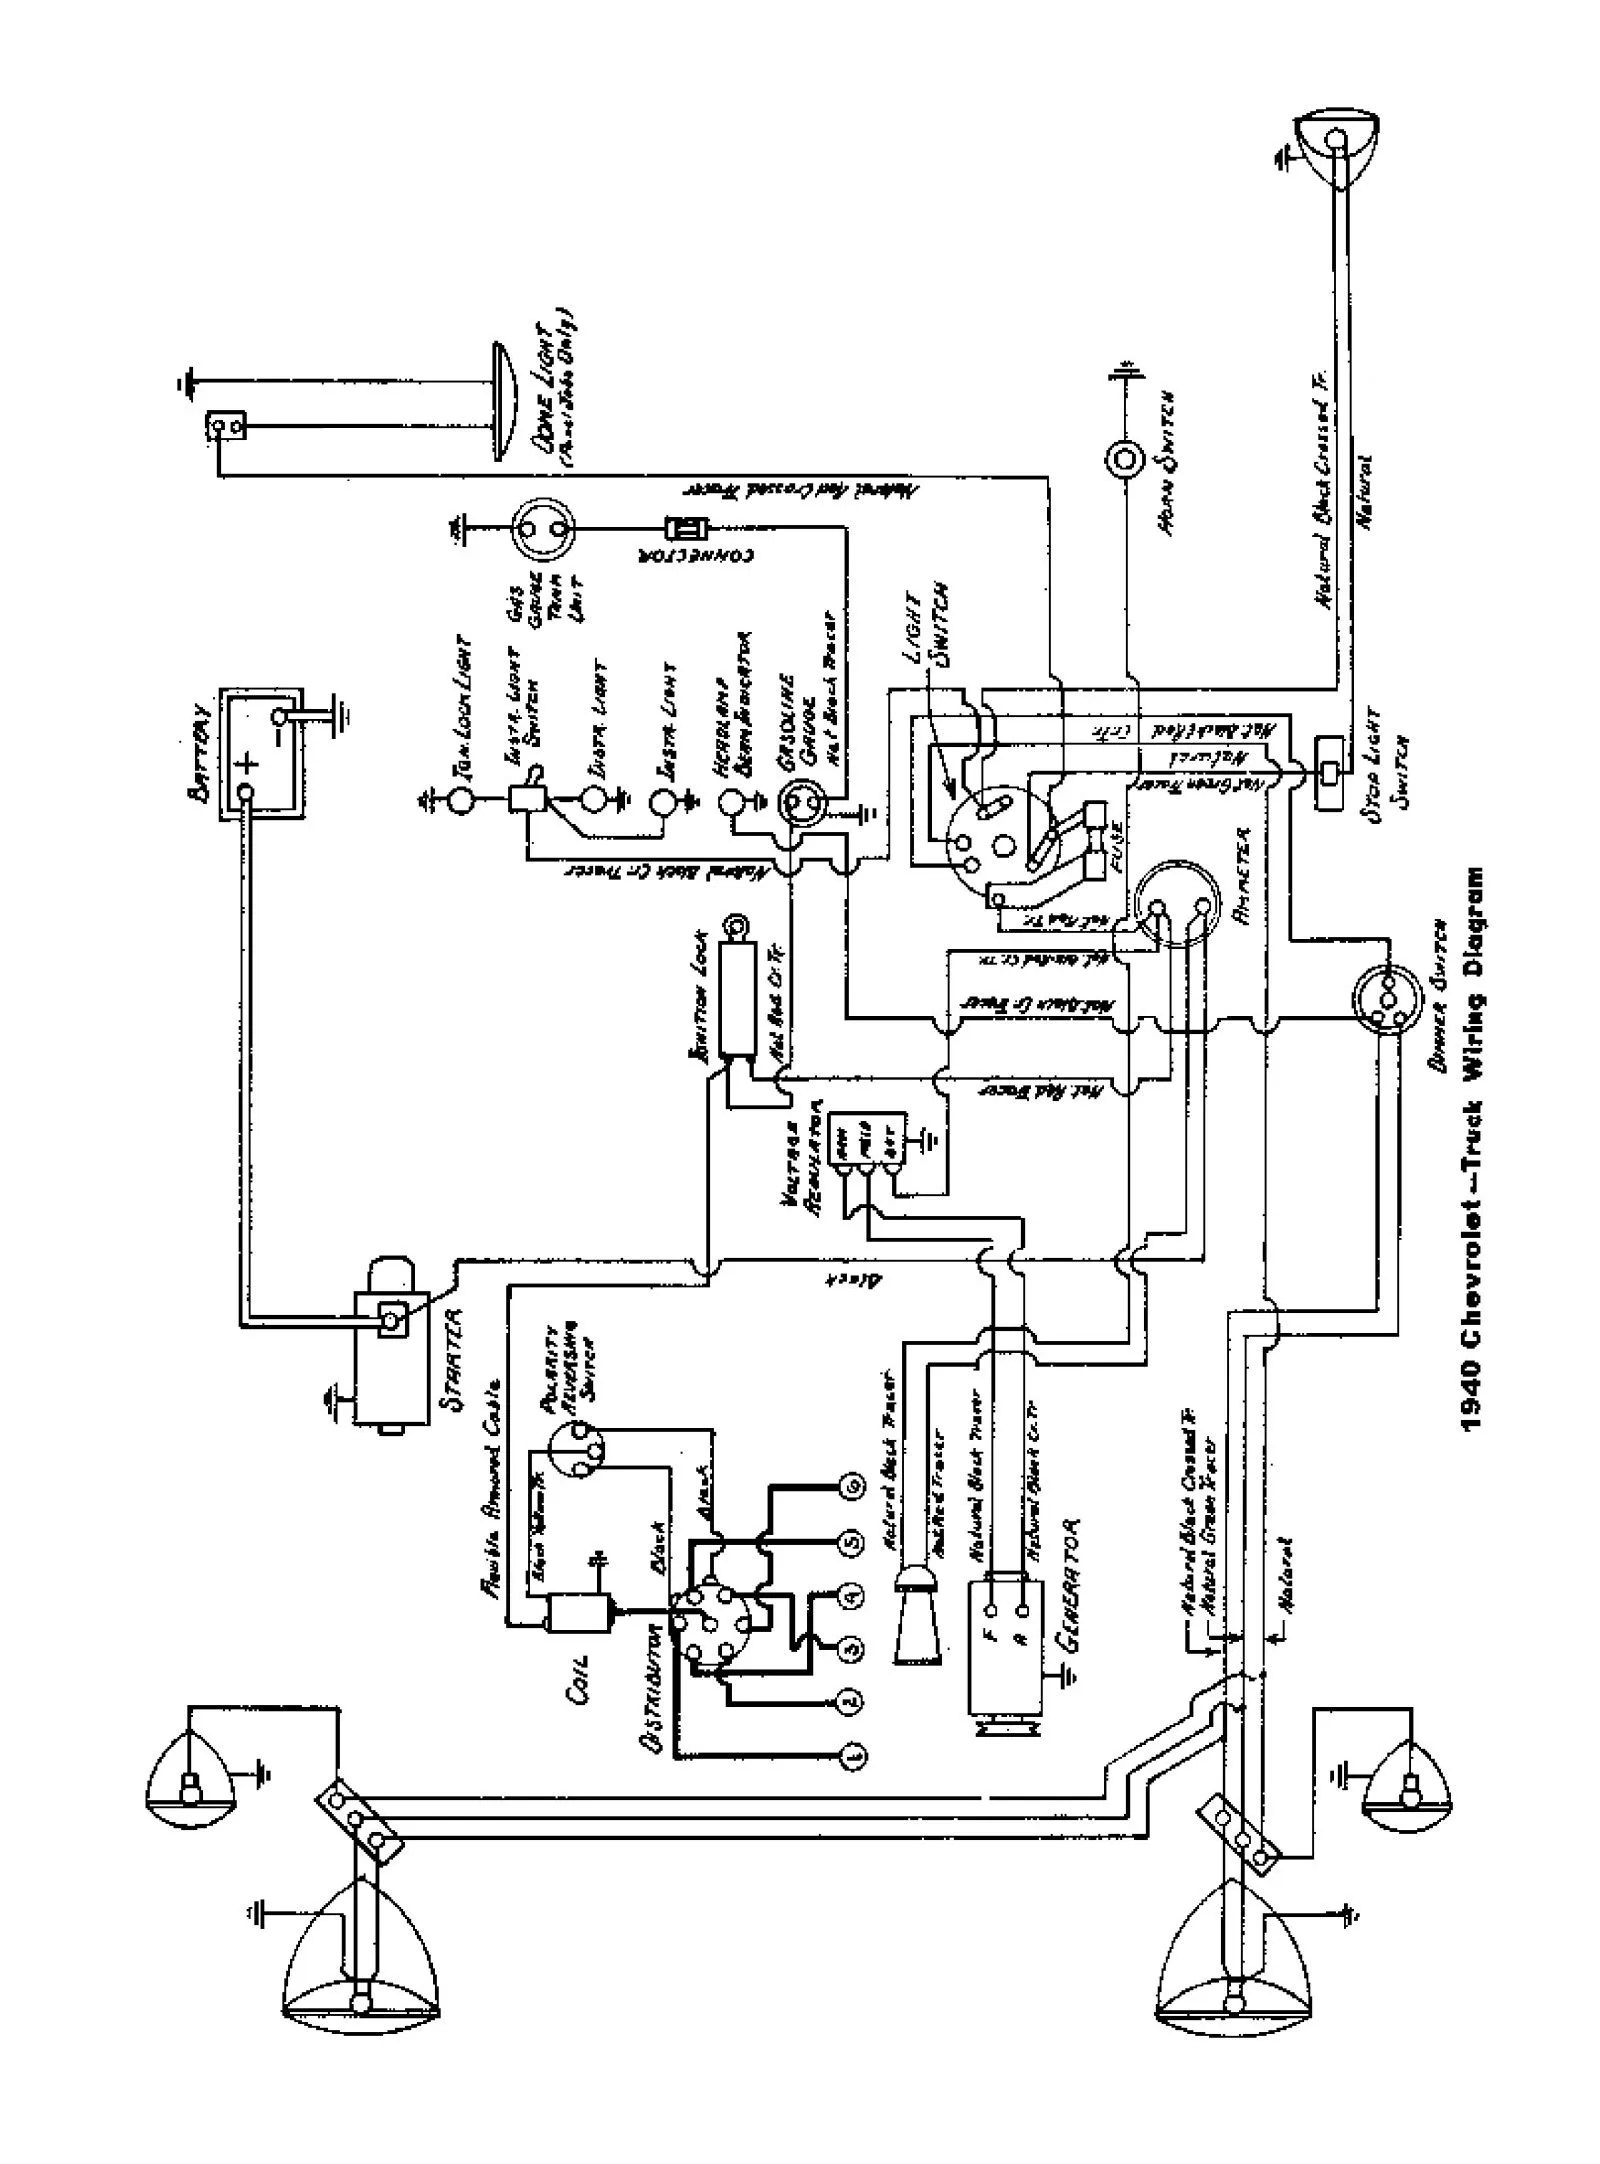 hight resolution of wrg 2586 1946 chevy pickup wiring diagram for 1946 international harvester truck wiring harness